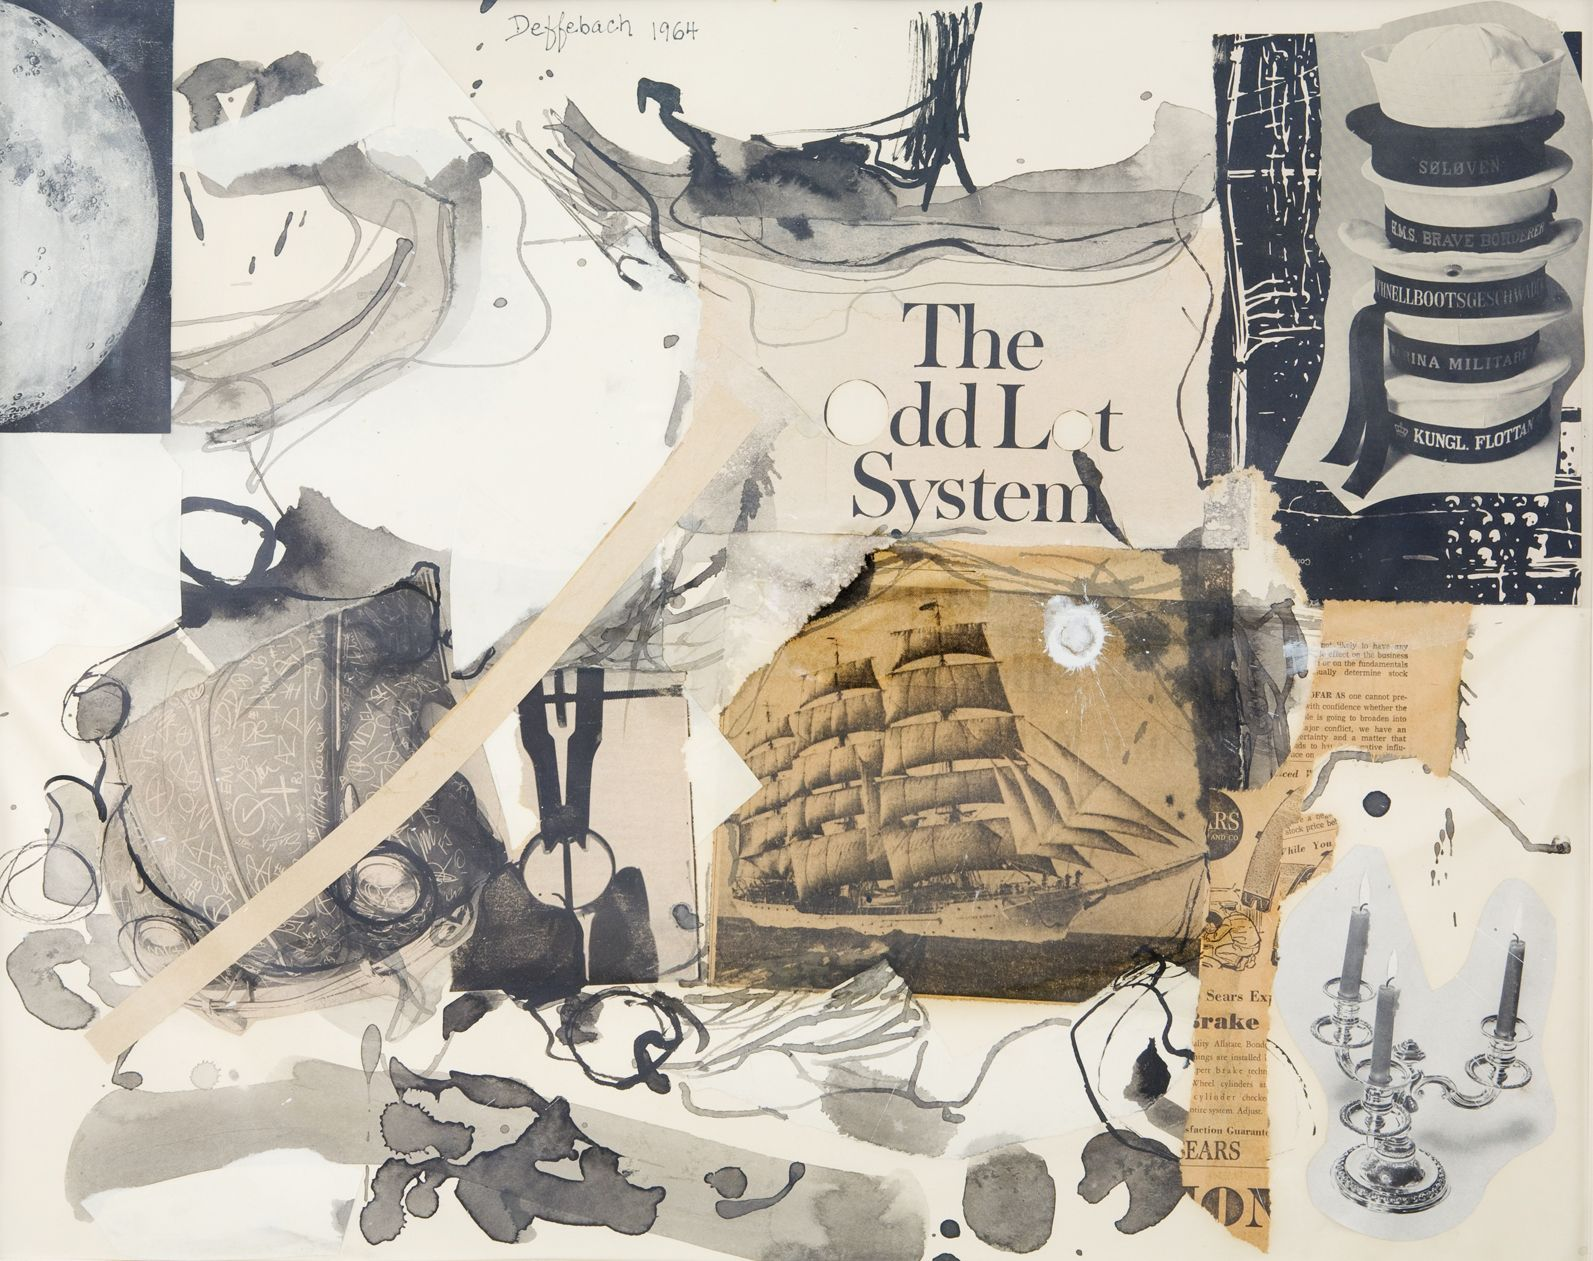 Lee Deffebach, collage, utah artist, utah art